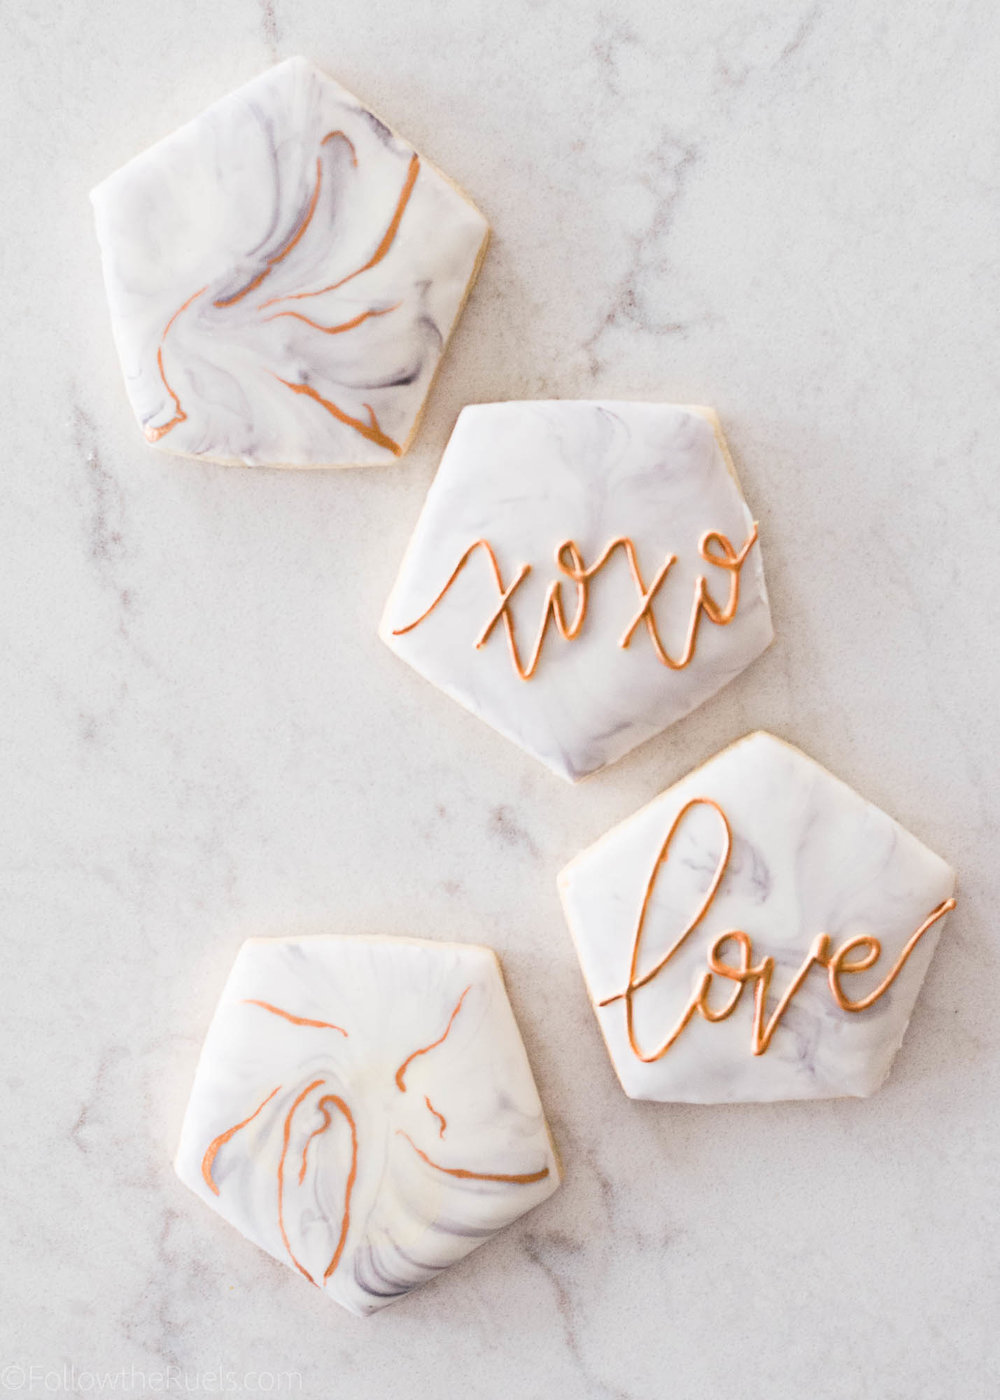 Marble-and-Gold-Cookies-10.jpg